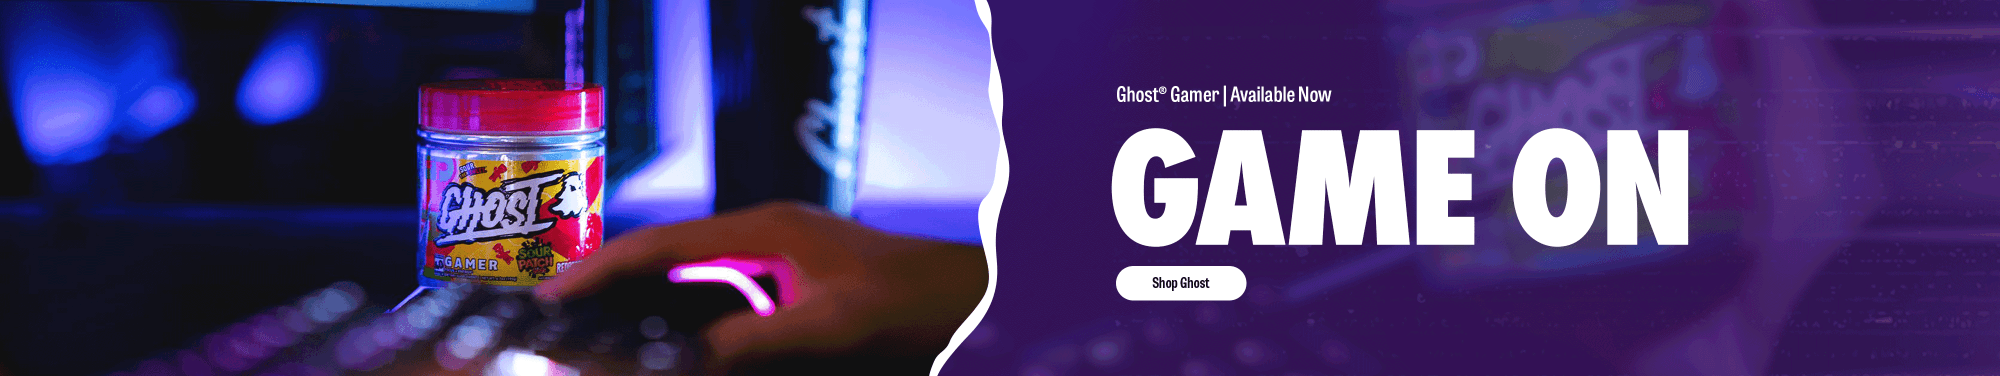 Ghost Gamer Now Available